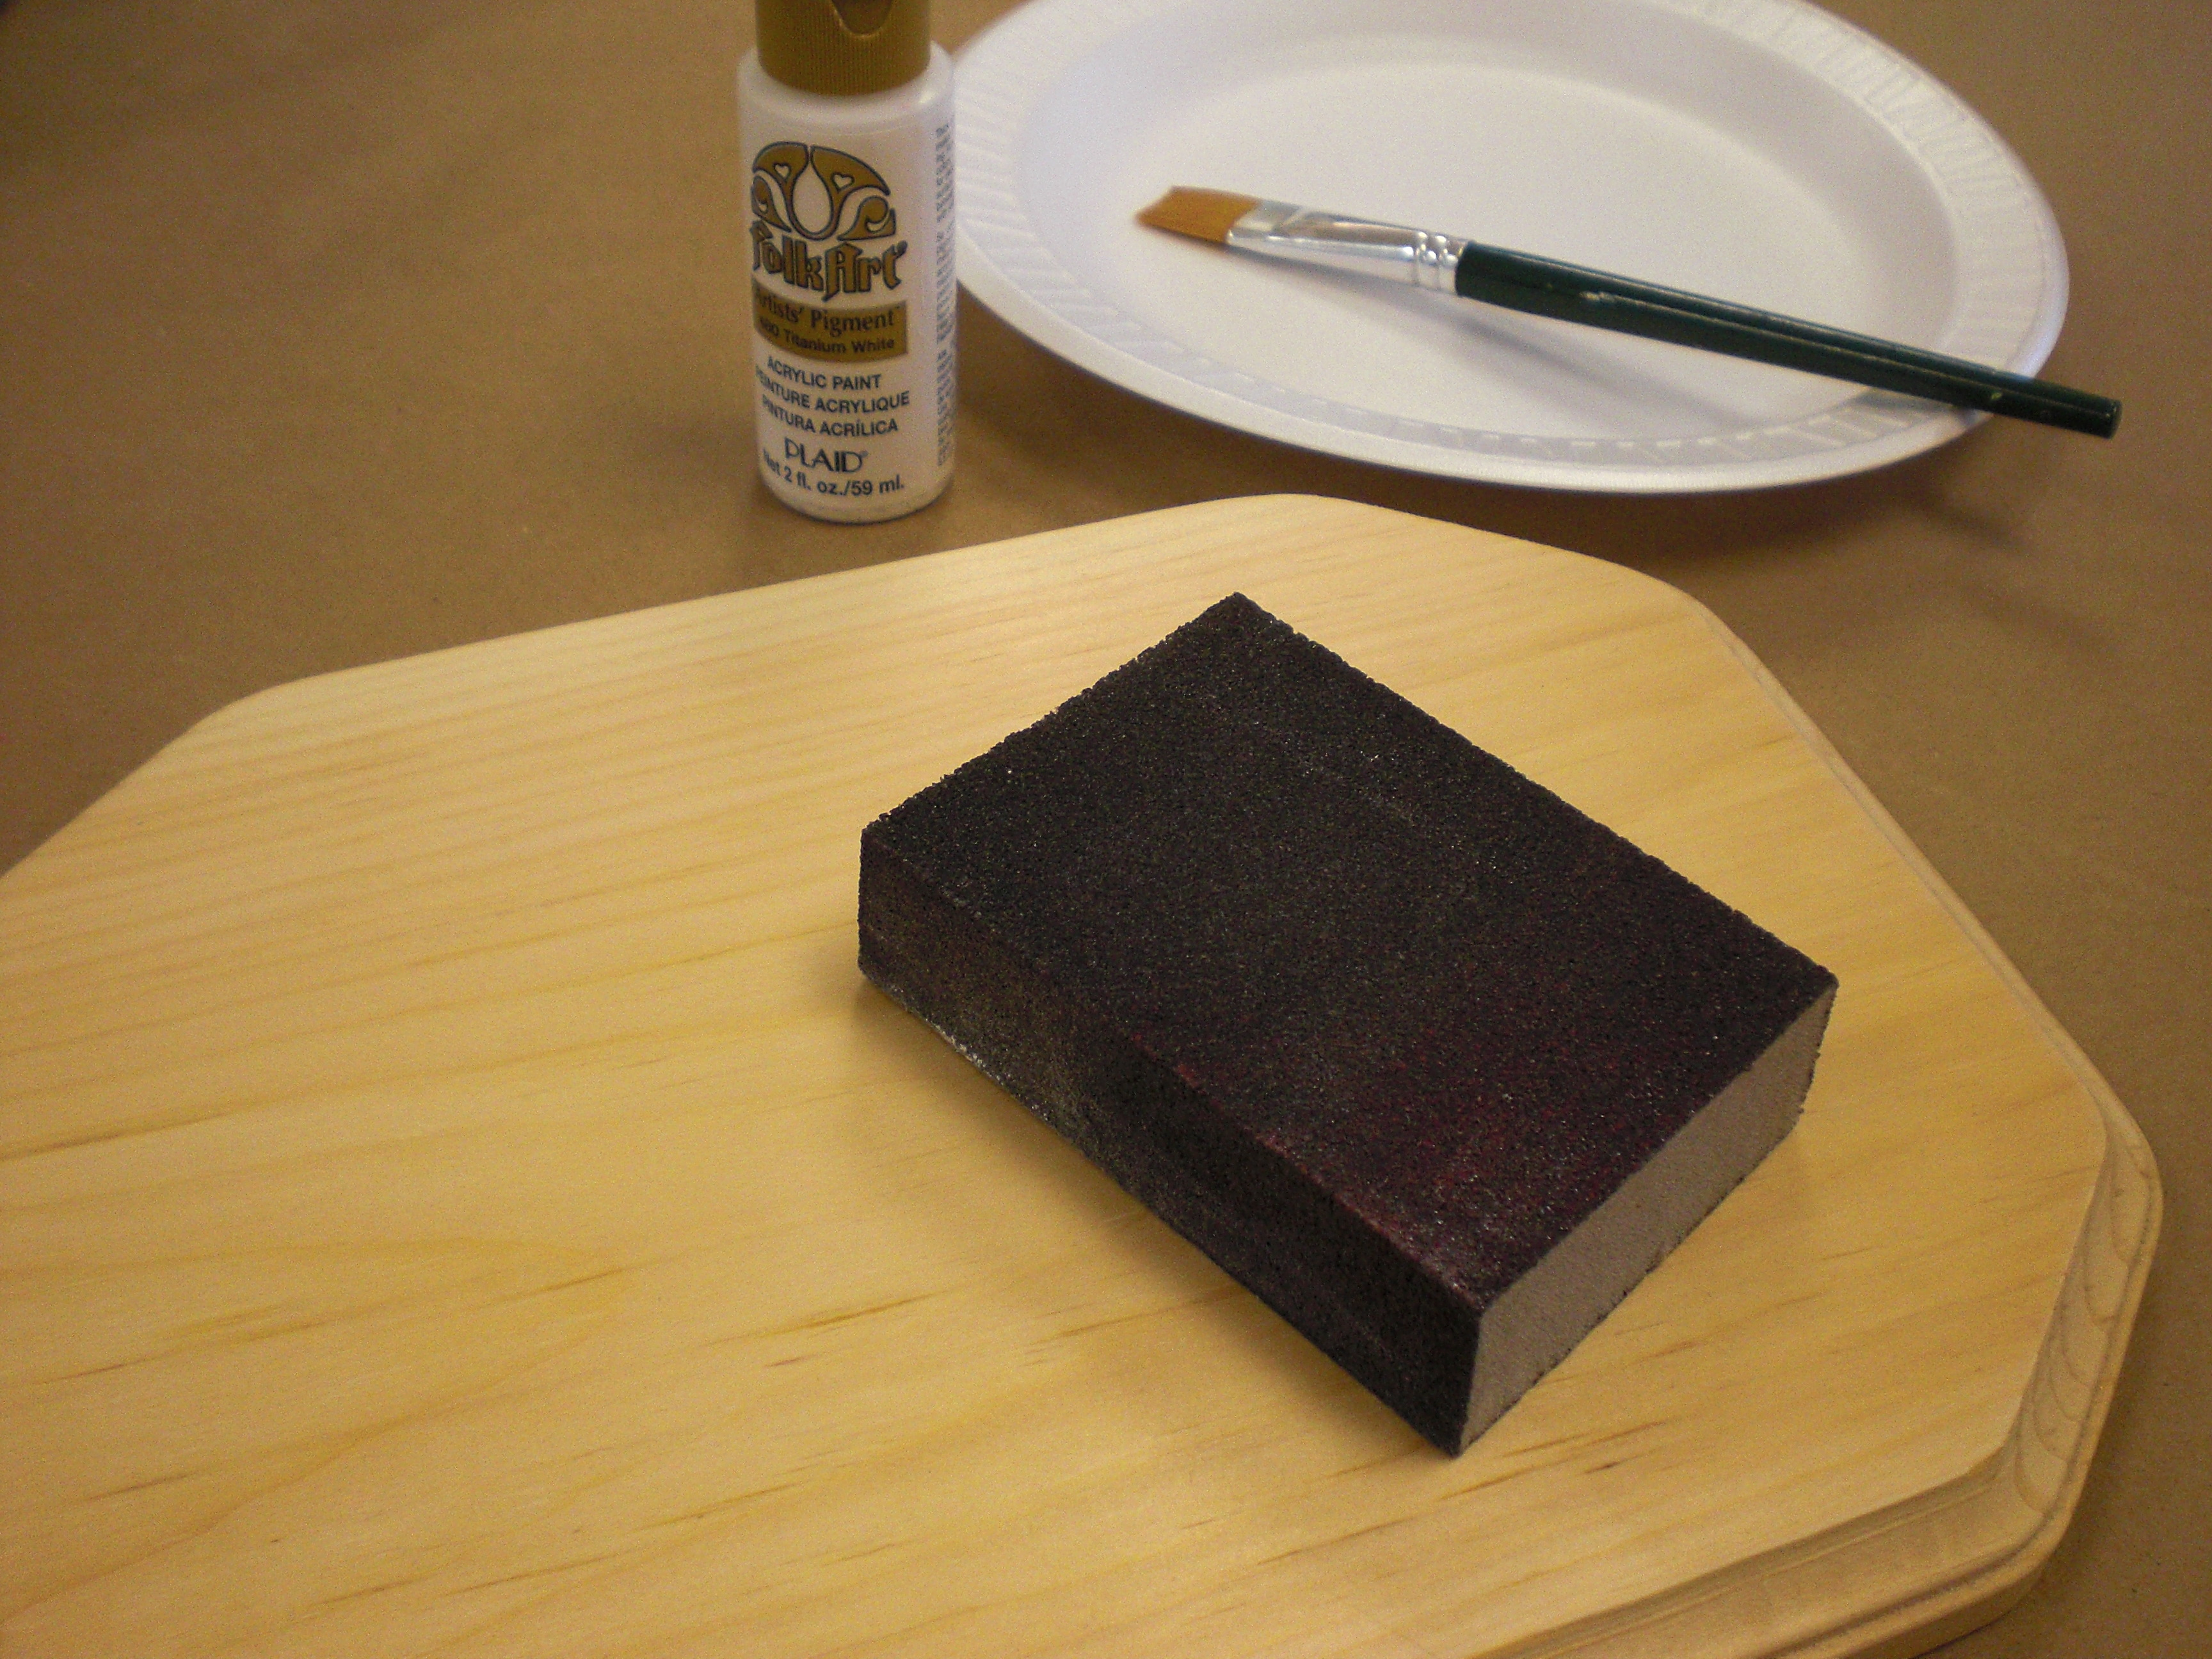 Wood Looking Paint How To Prepare Wood Surfaces With Acrylic Basecoats Plaid Online